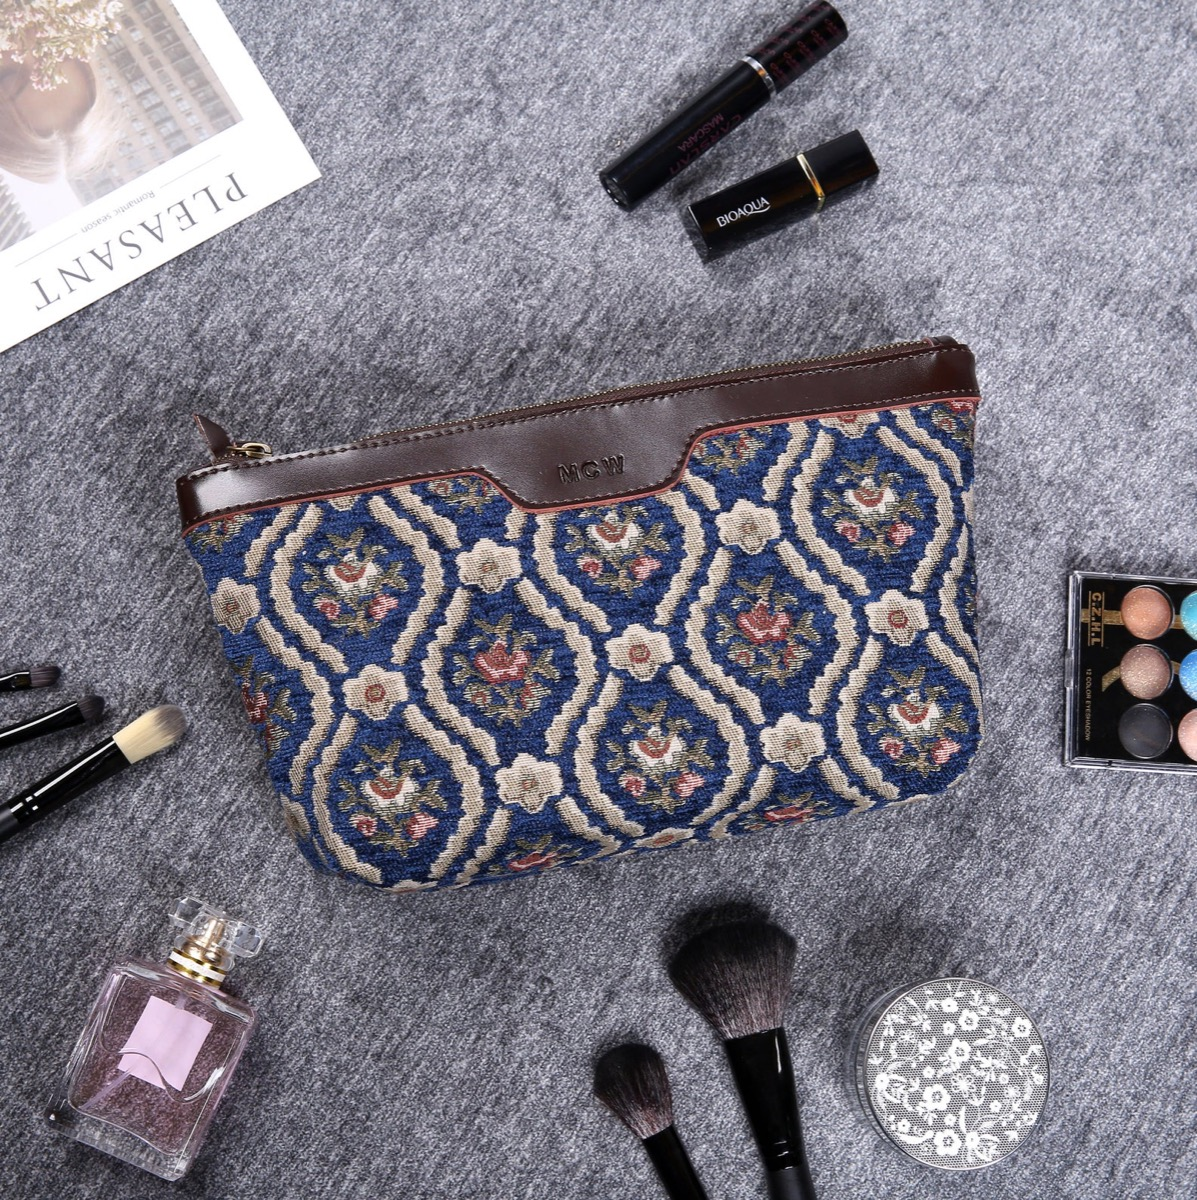 Blue vintage print bag surrounded by beauty products